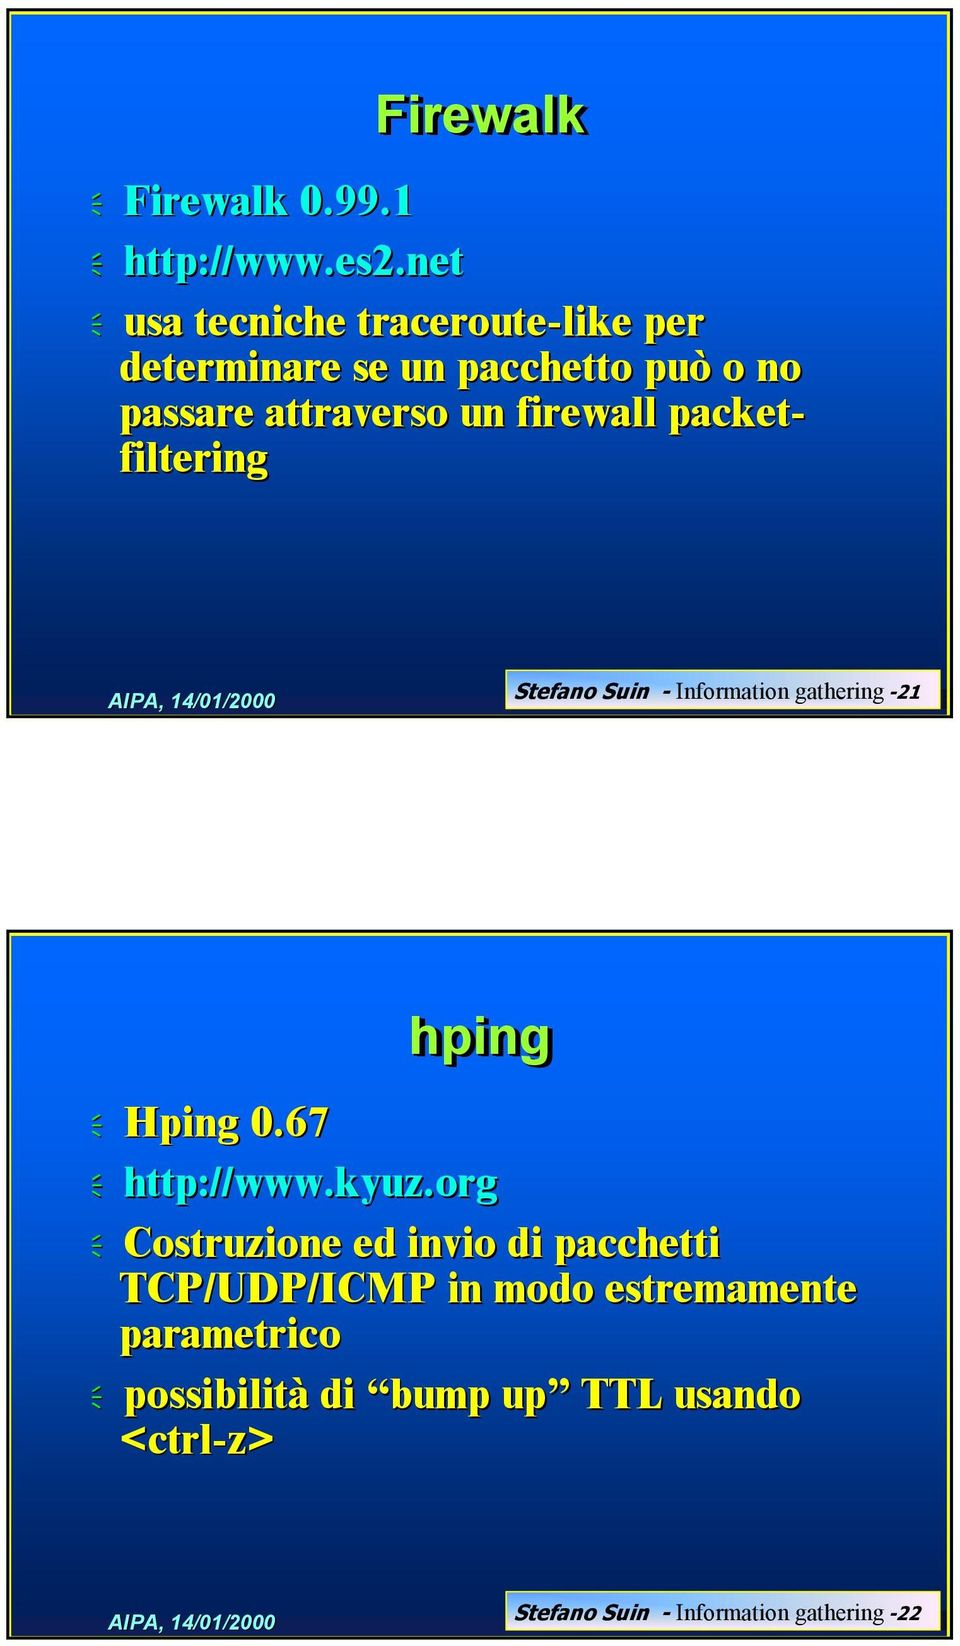 firewall packet- filtering Stefano Suin - Information gathering -21 hping Hping 0.67 http://www.kyuz.